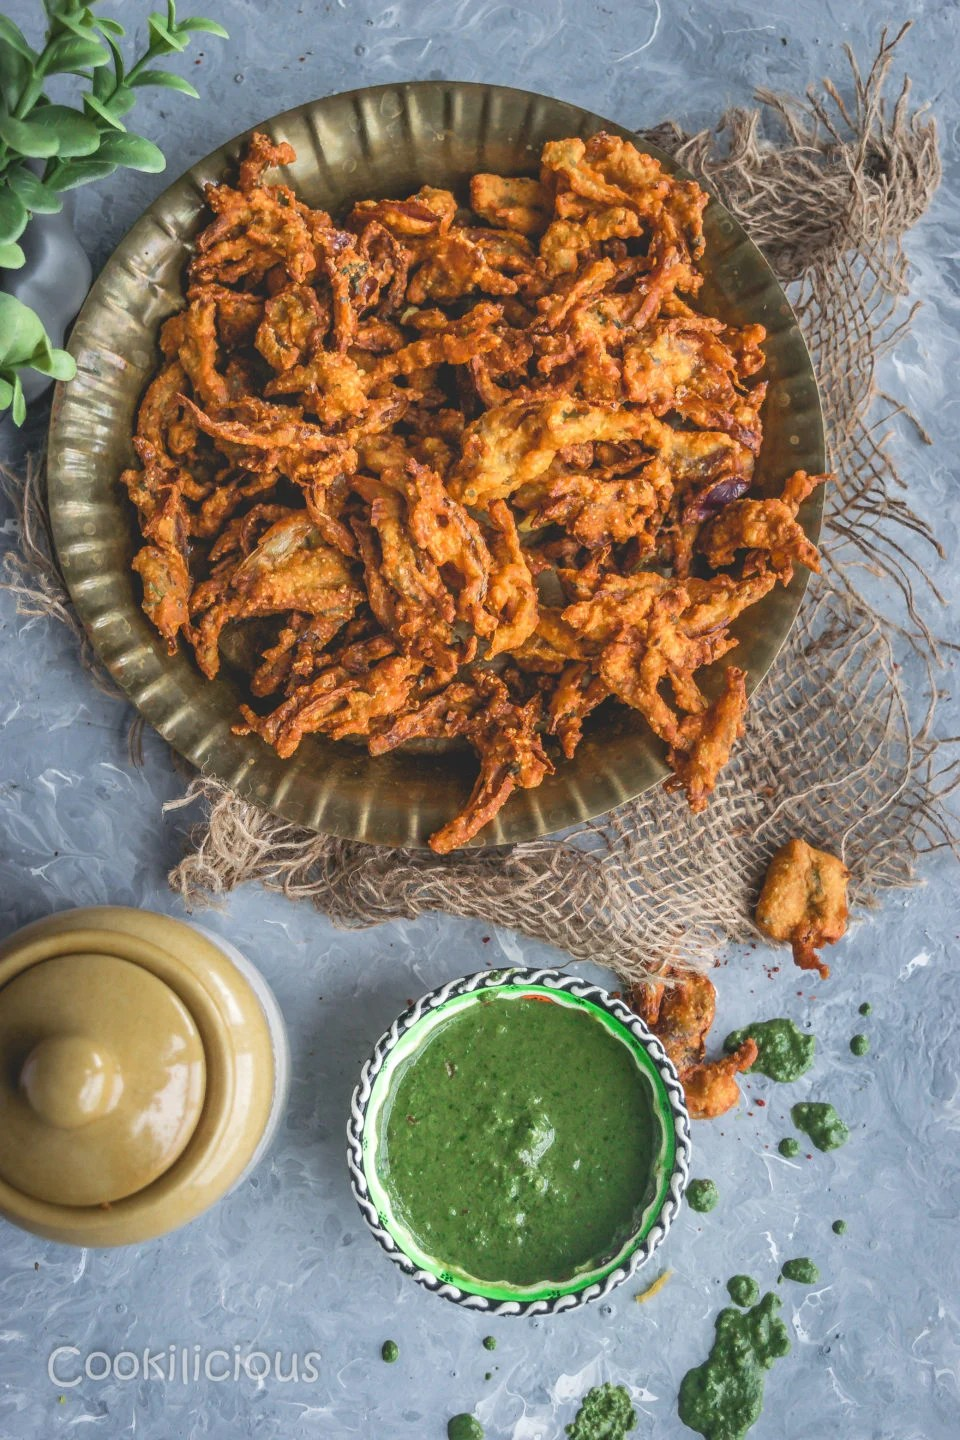 a plate filled with Vegan Crispy Onion Pakoda | Fried Kanda Bhajiya with chutney on the side